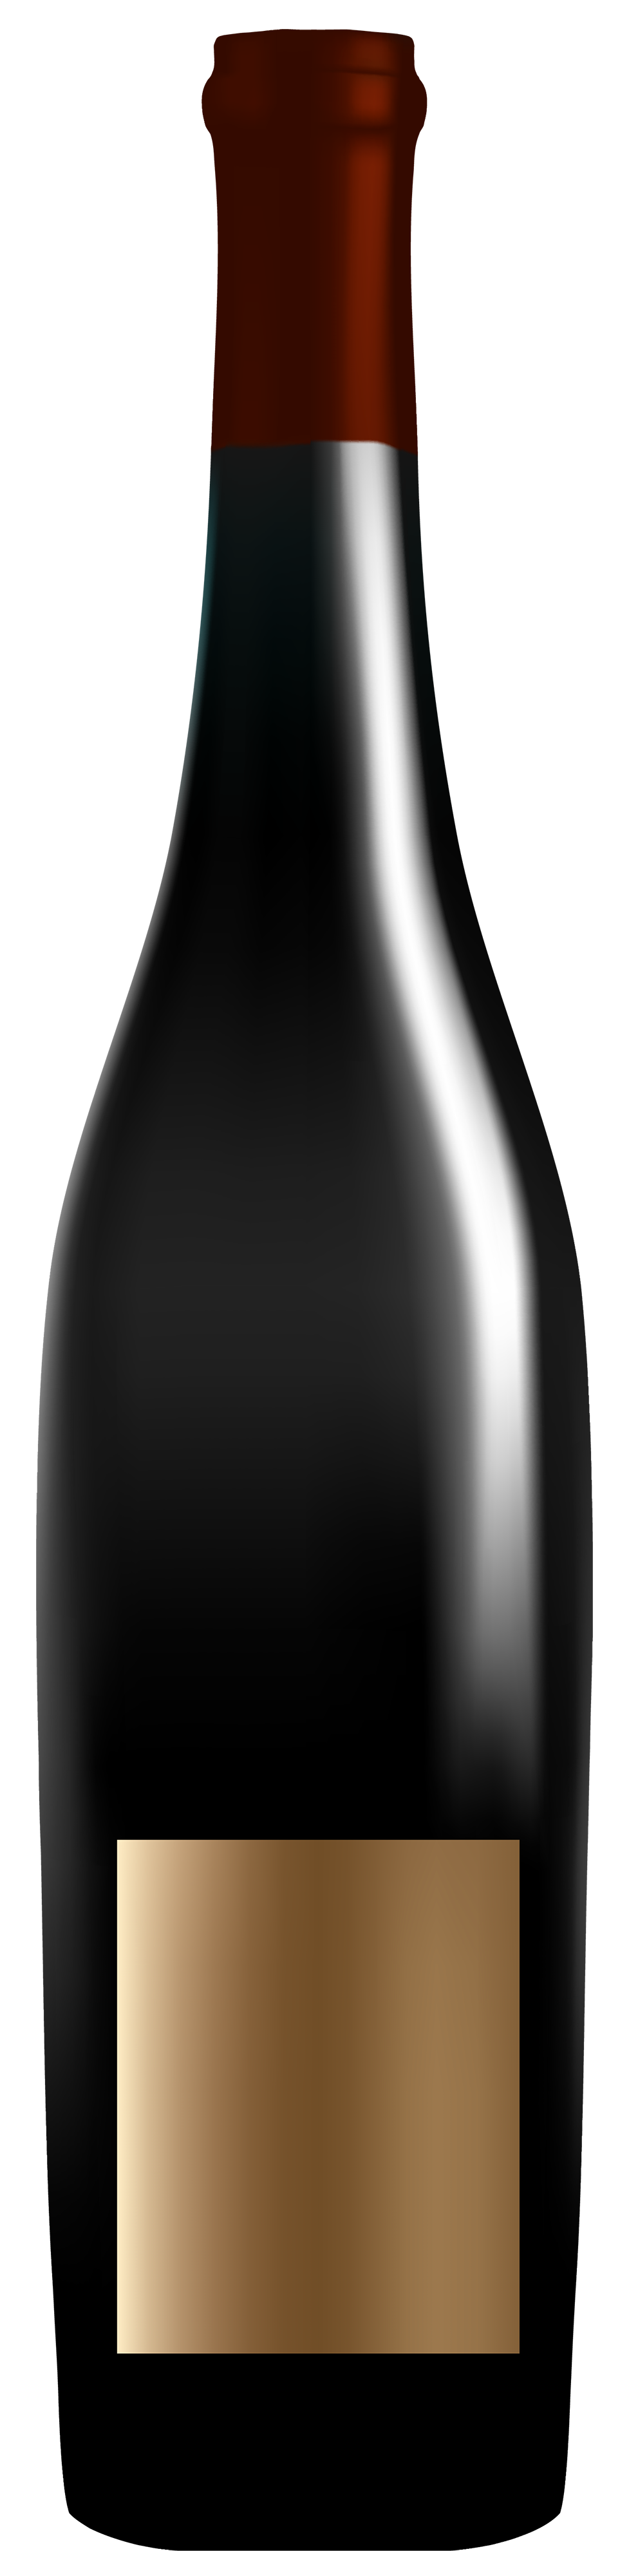 white wine bottle png